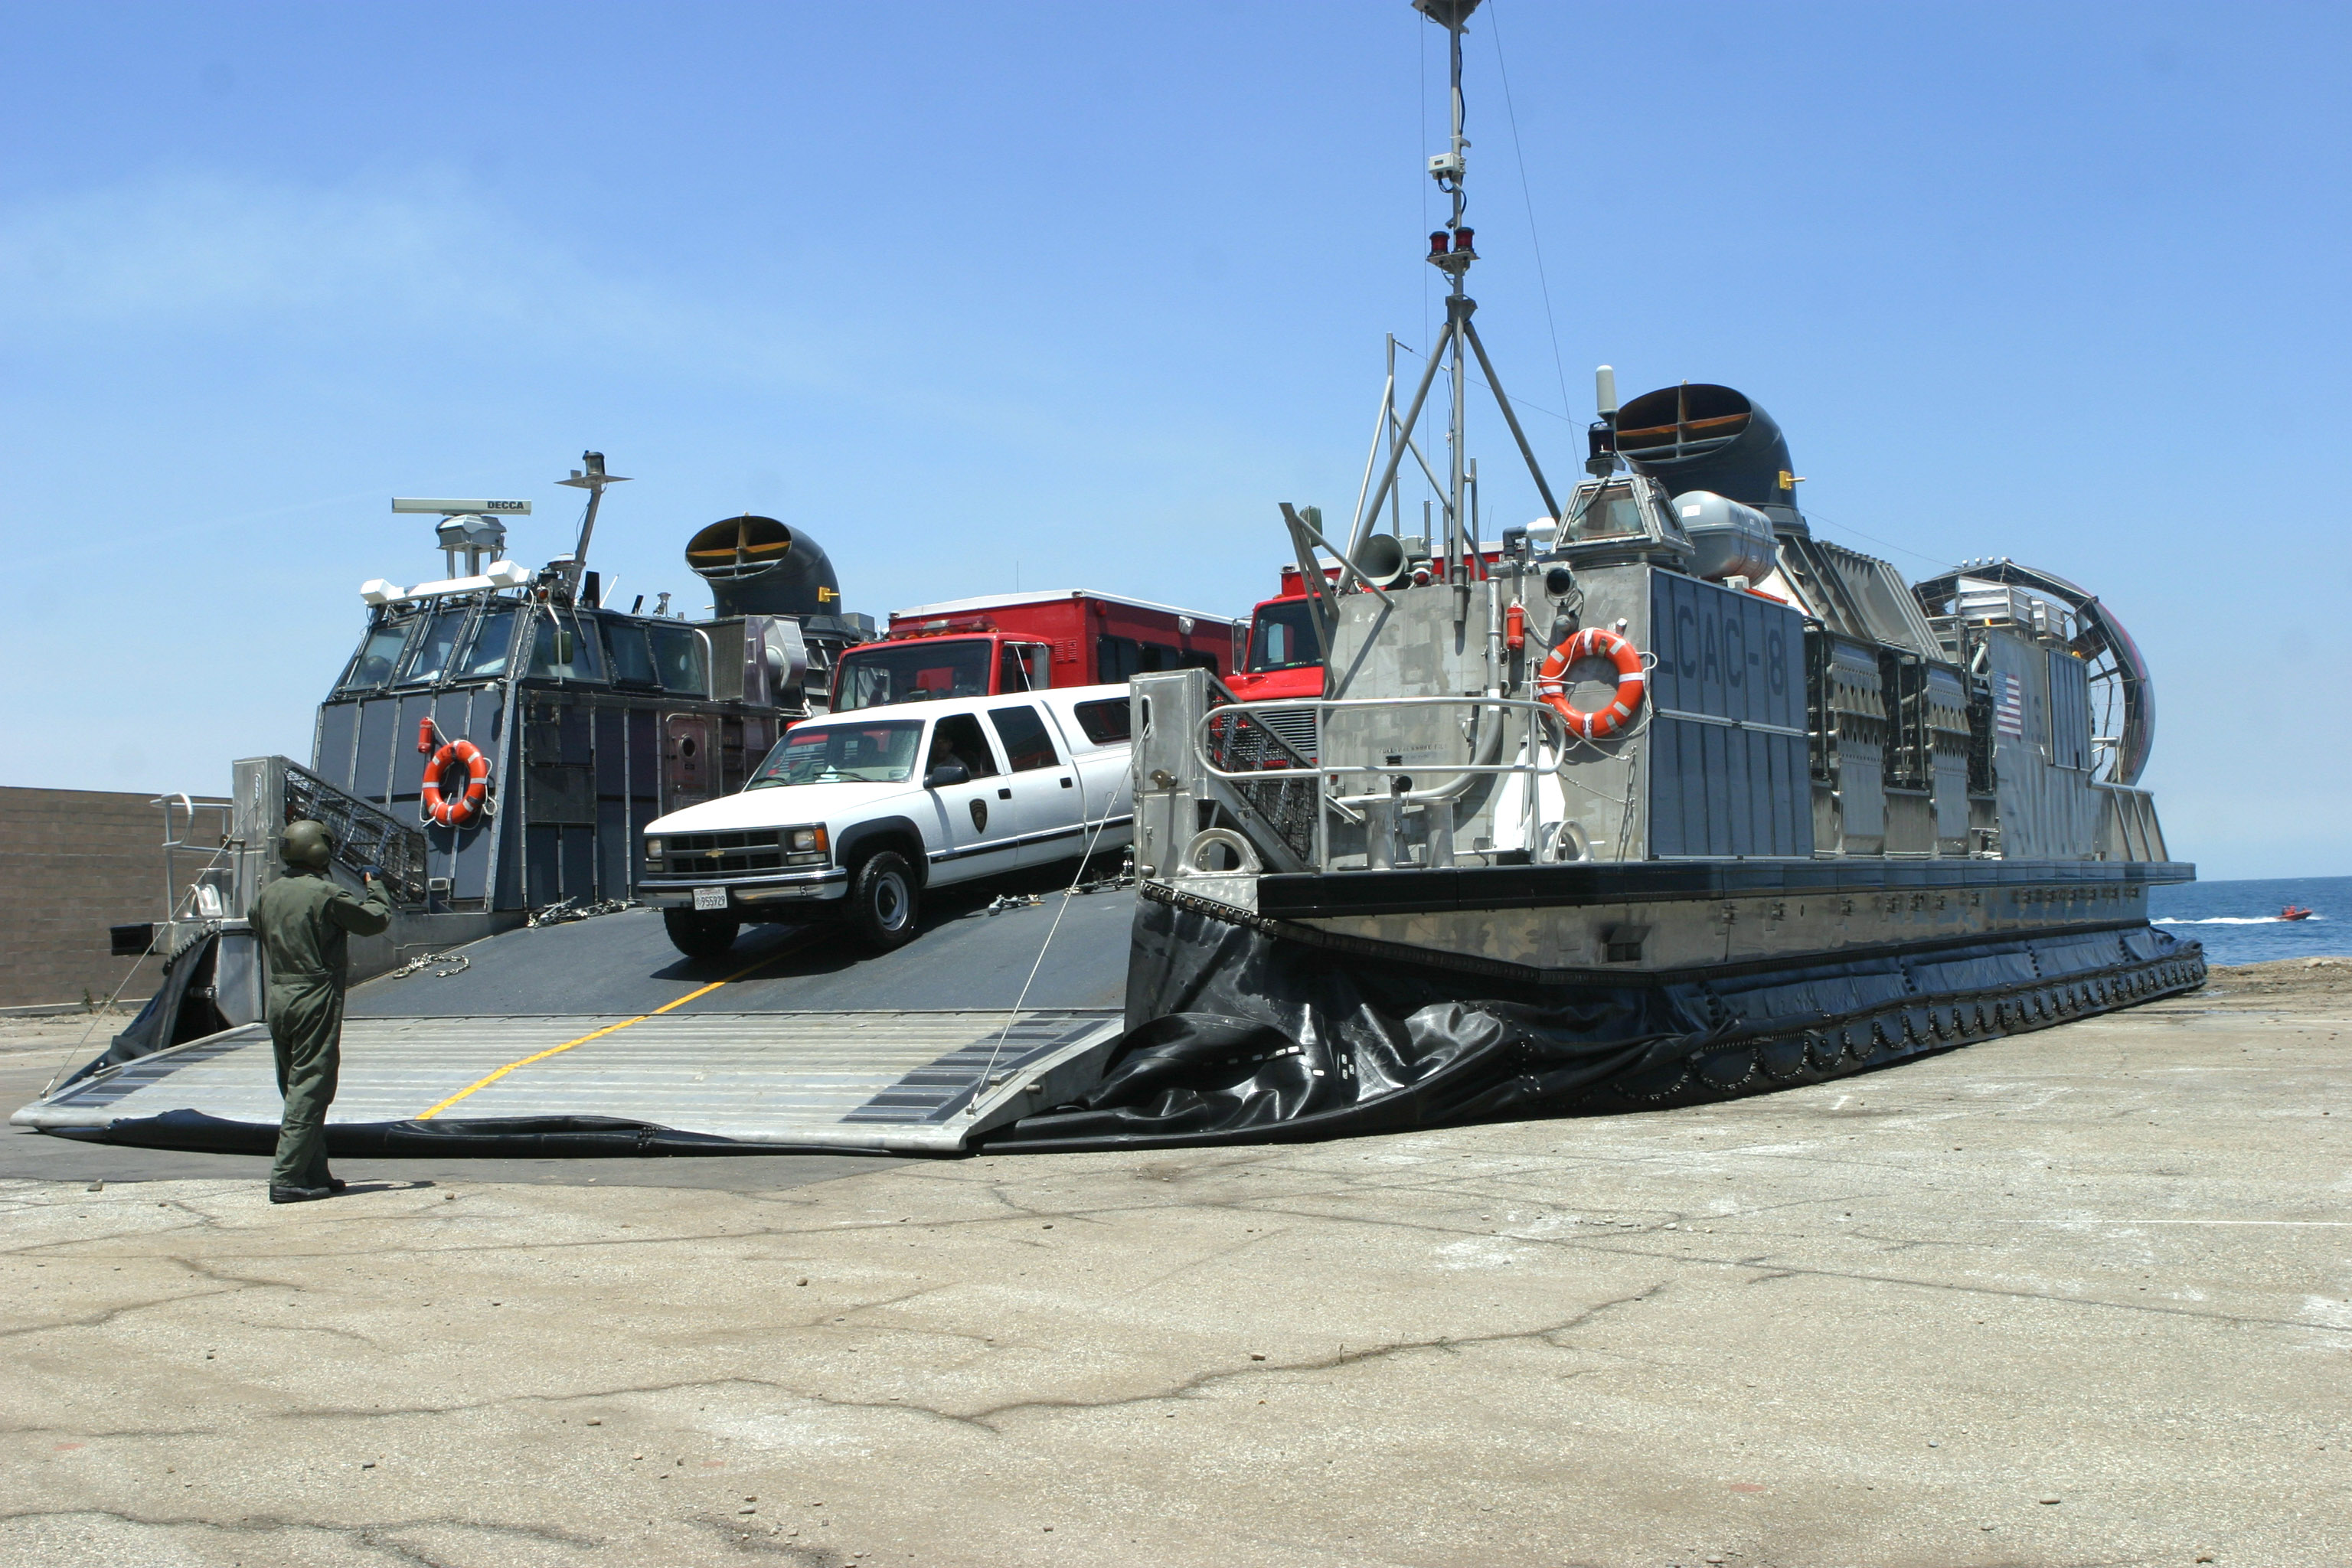 Landing Craft Air Cushion Arma